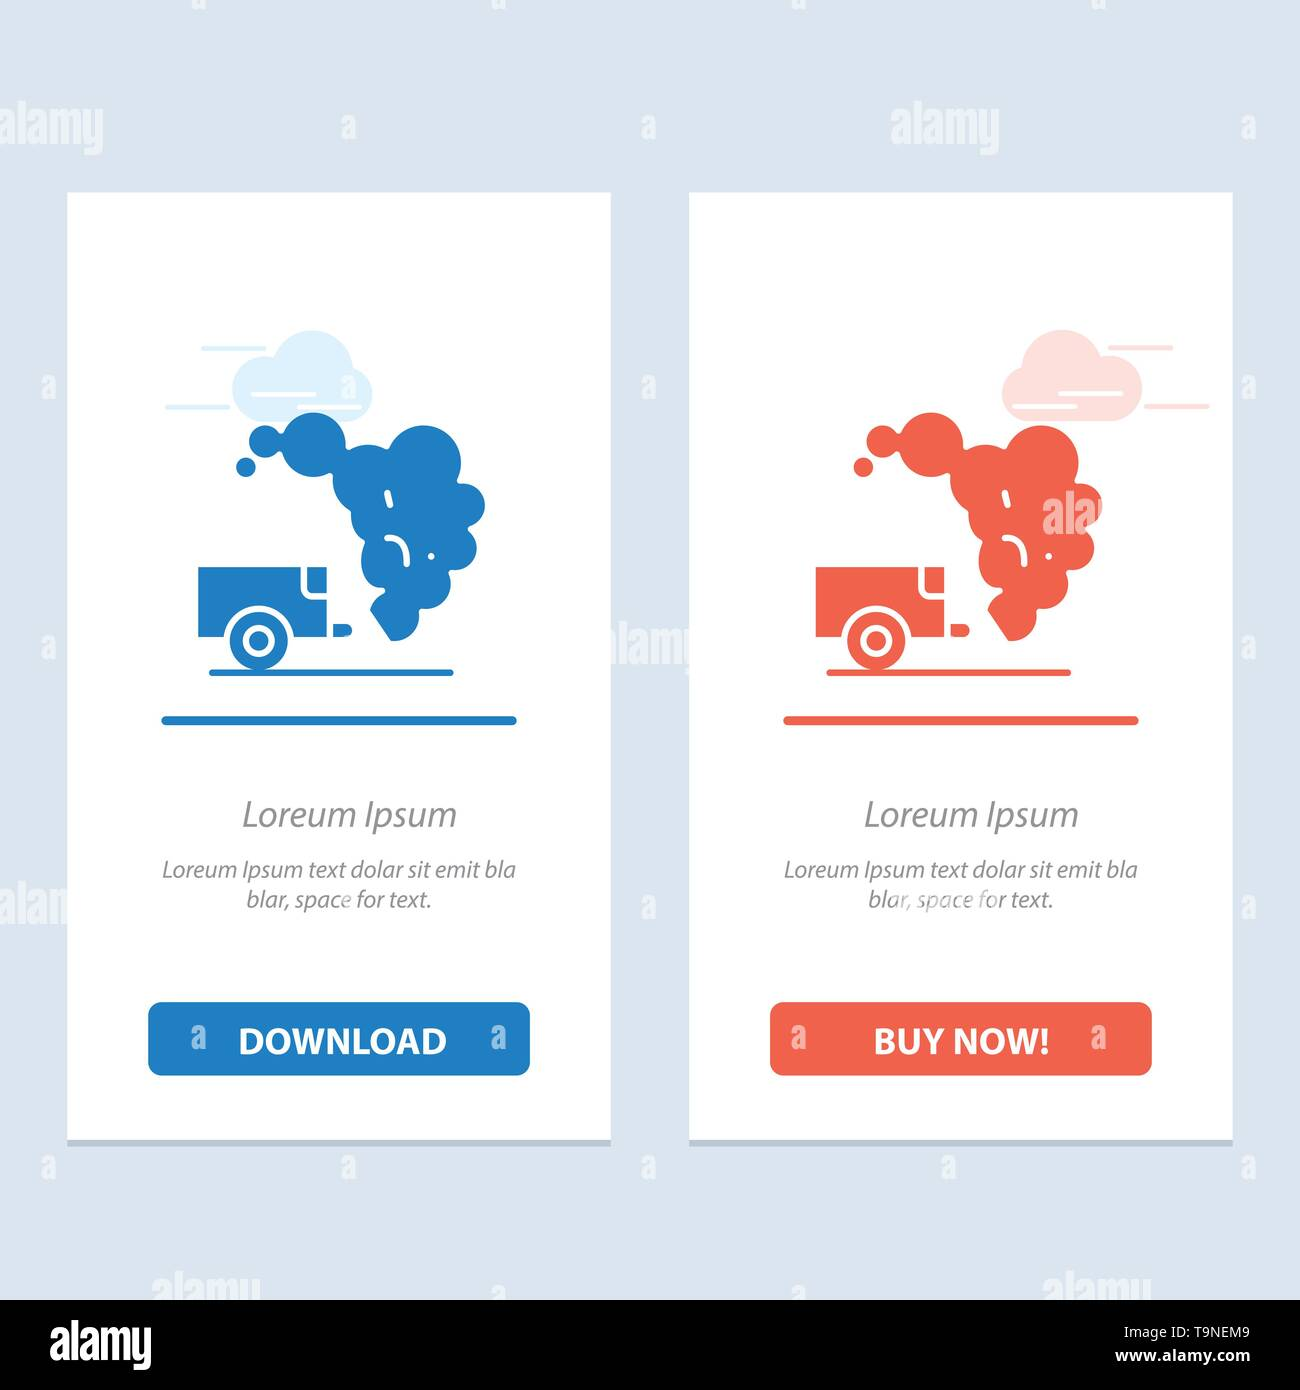 Dump, Environment, Garbage, Pollution  Blue and Red Download and Buy Now web Widget Card Template - Stock Image